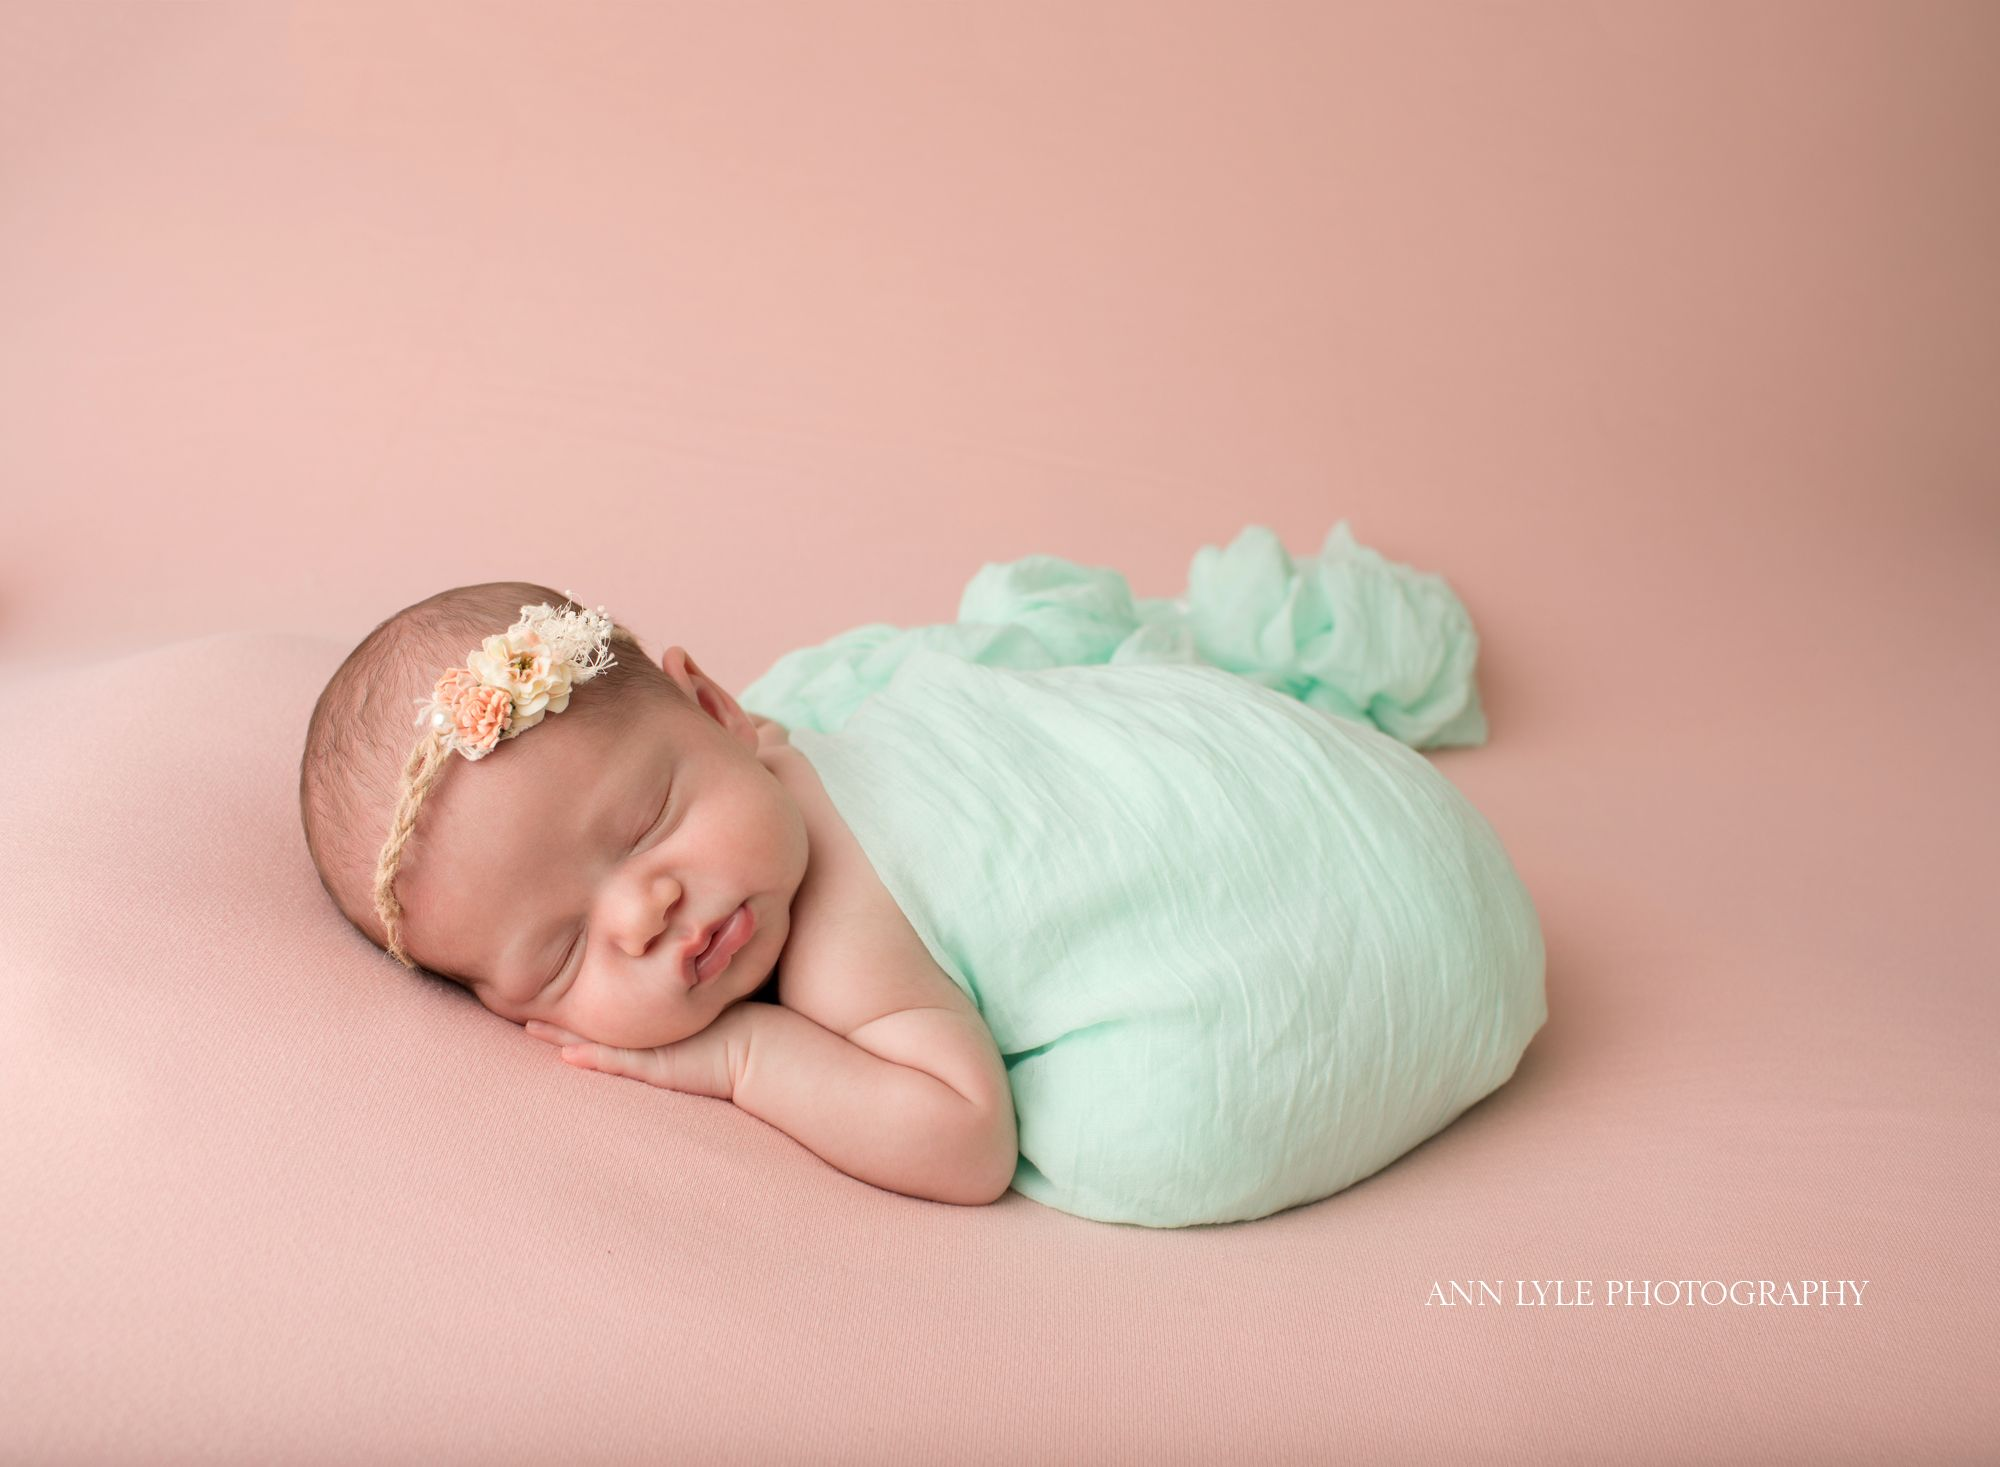 Pin by ann lyle photography on newborn sessions newborn